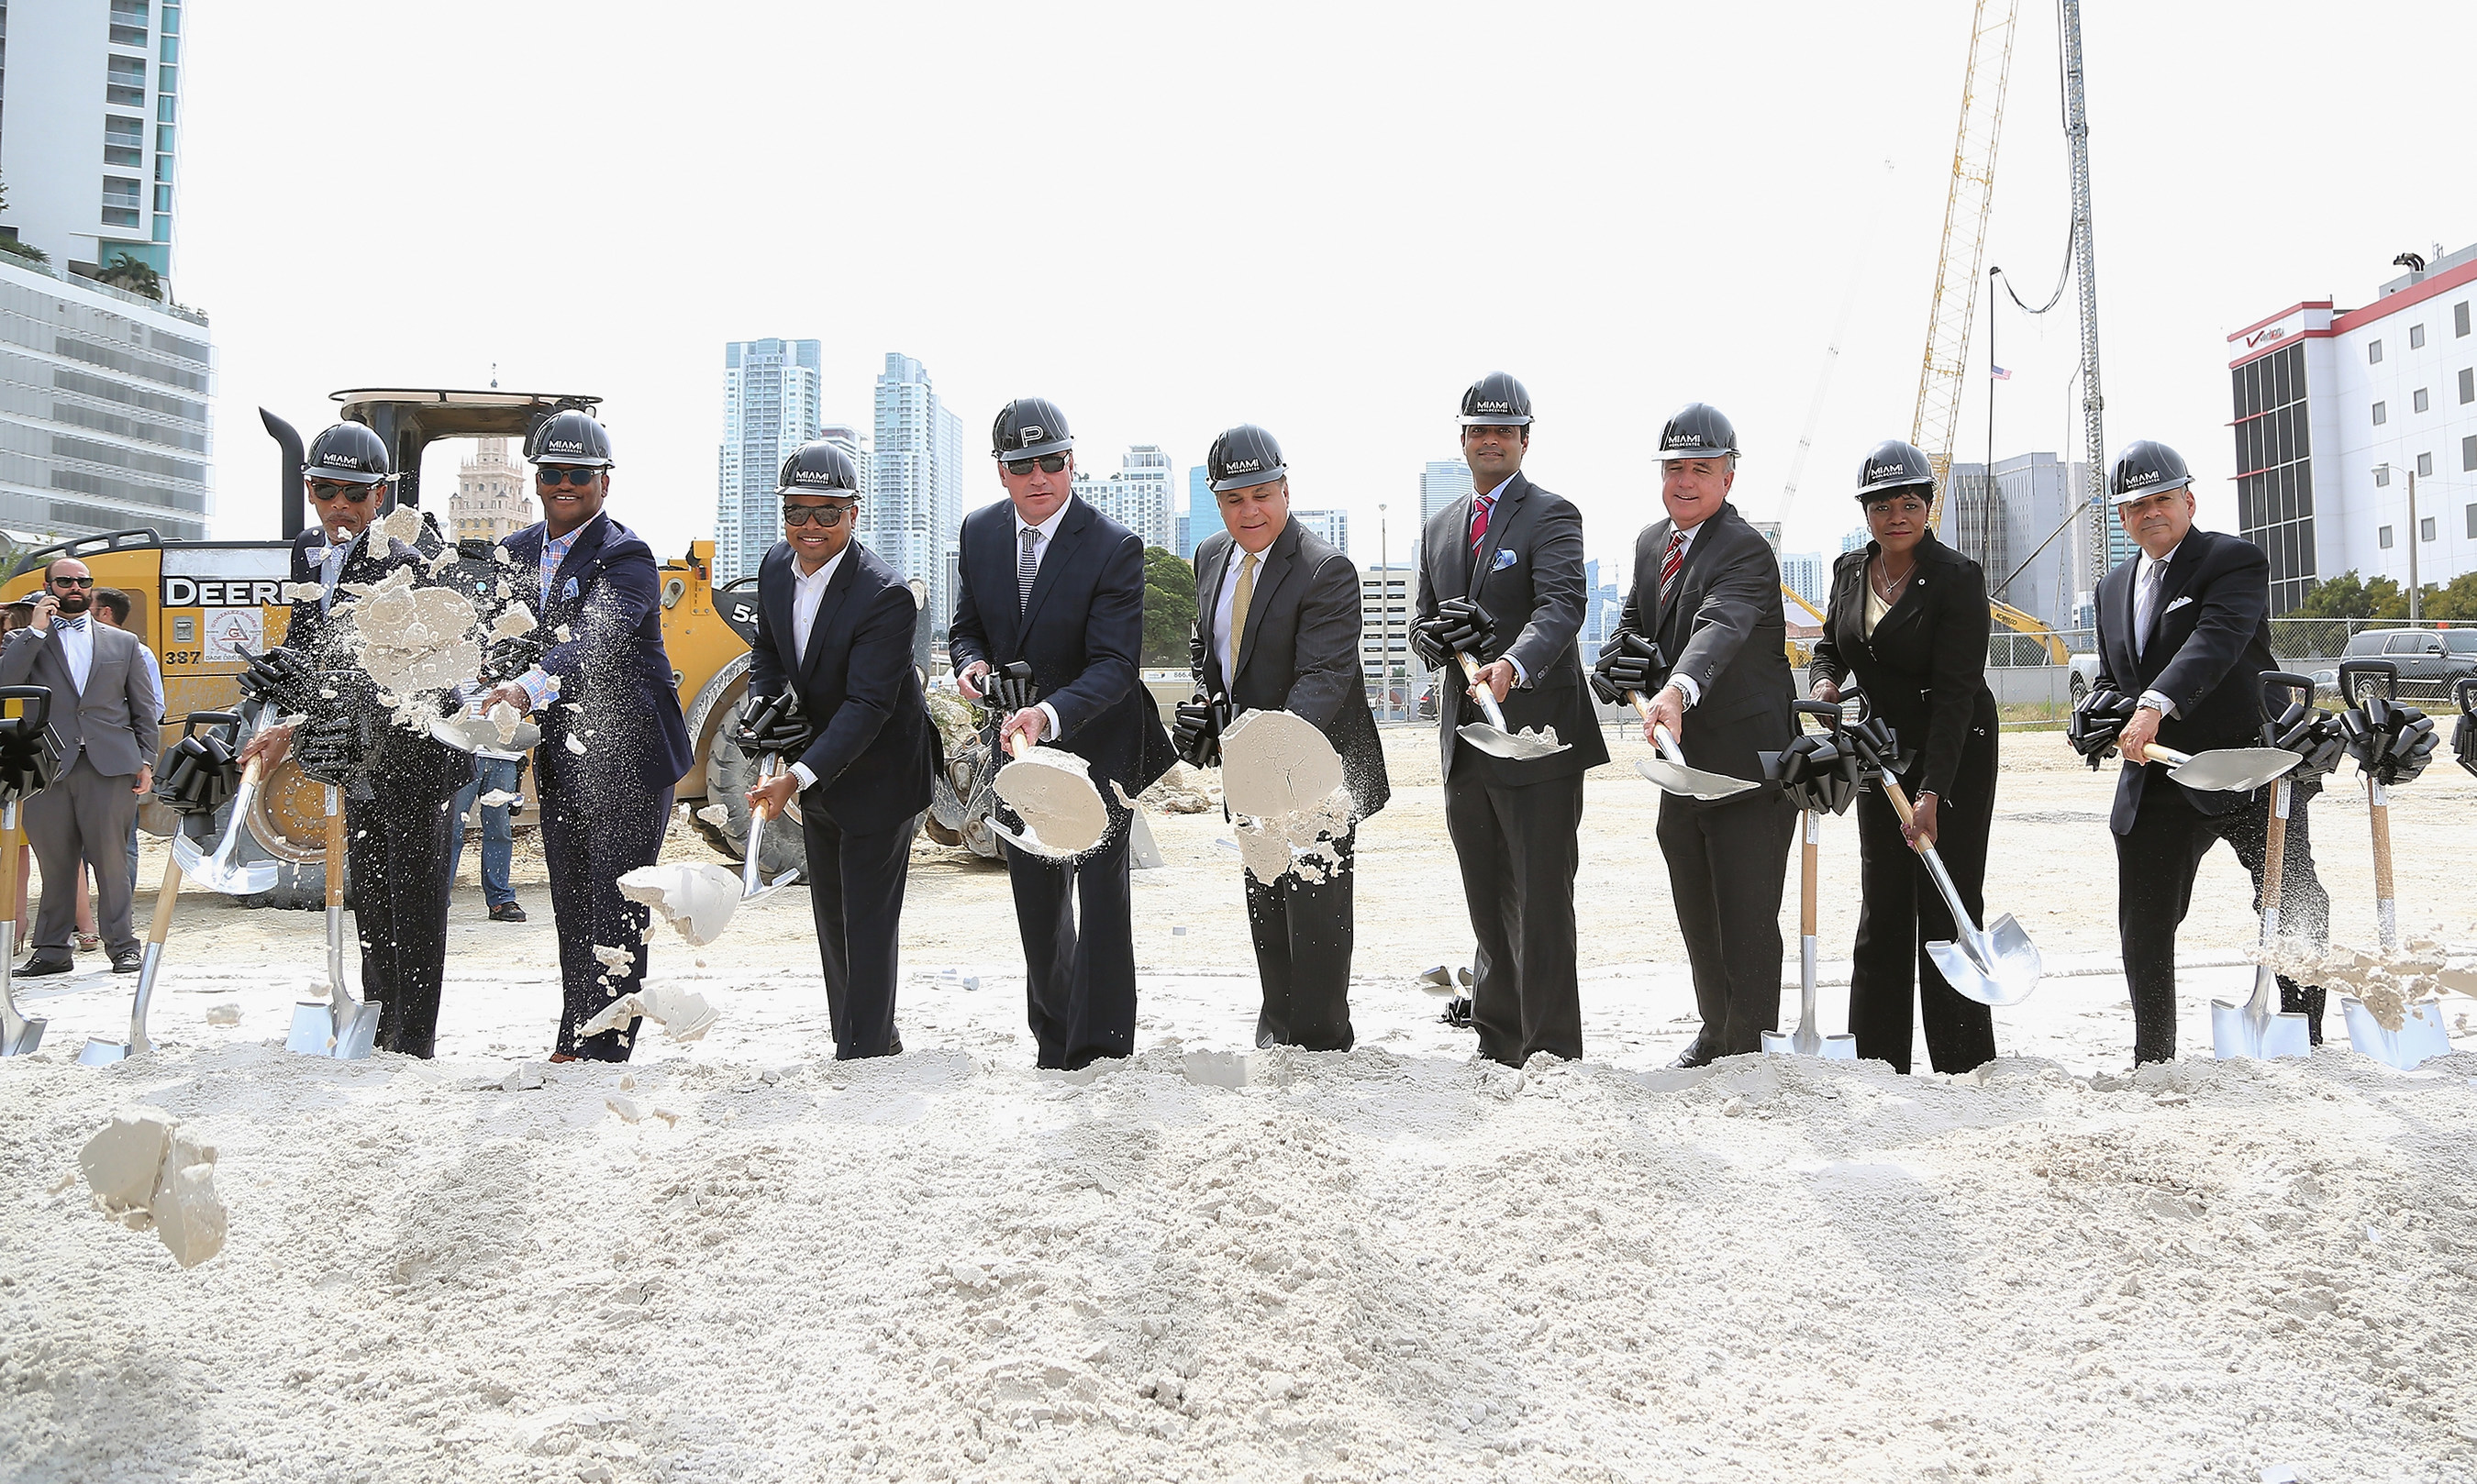 Miami-Dade Mayor Carlos Gimenez, Commissioners and Miami Worldcenter Developers Daniel Kodsi, Nitin Motwani and Art Falcone Break Ground on America's Second-Largest Urban Development Featuring 700-foot, 60-story, $500 Million Dollar Signature Luxury Residential Skyscraper, Paramount Miami Worldcenter.